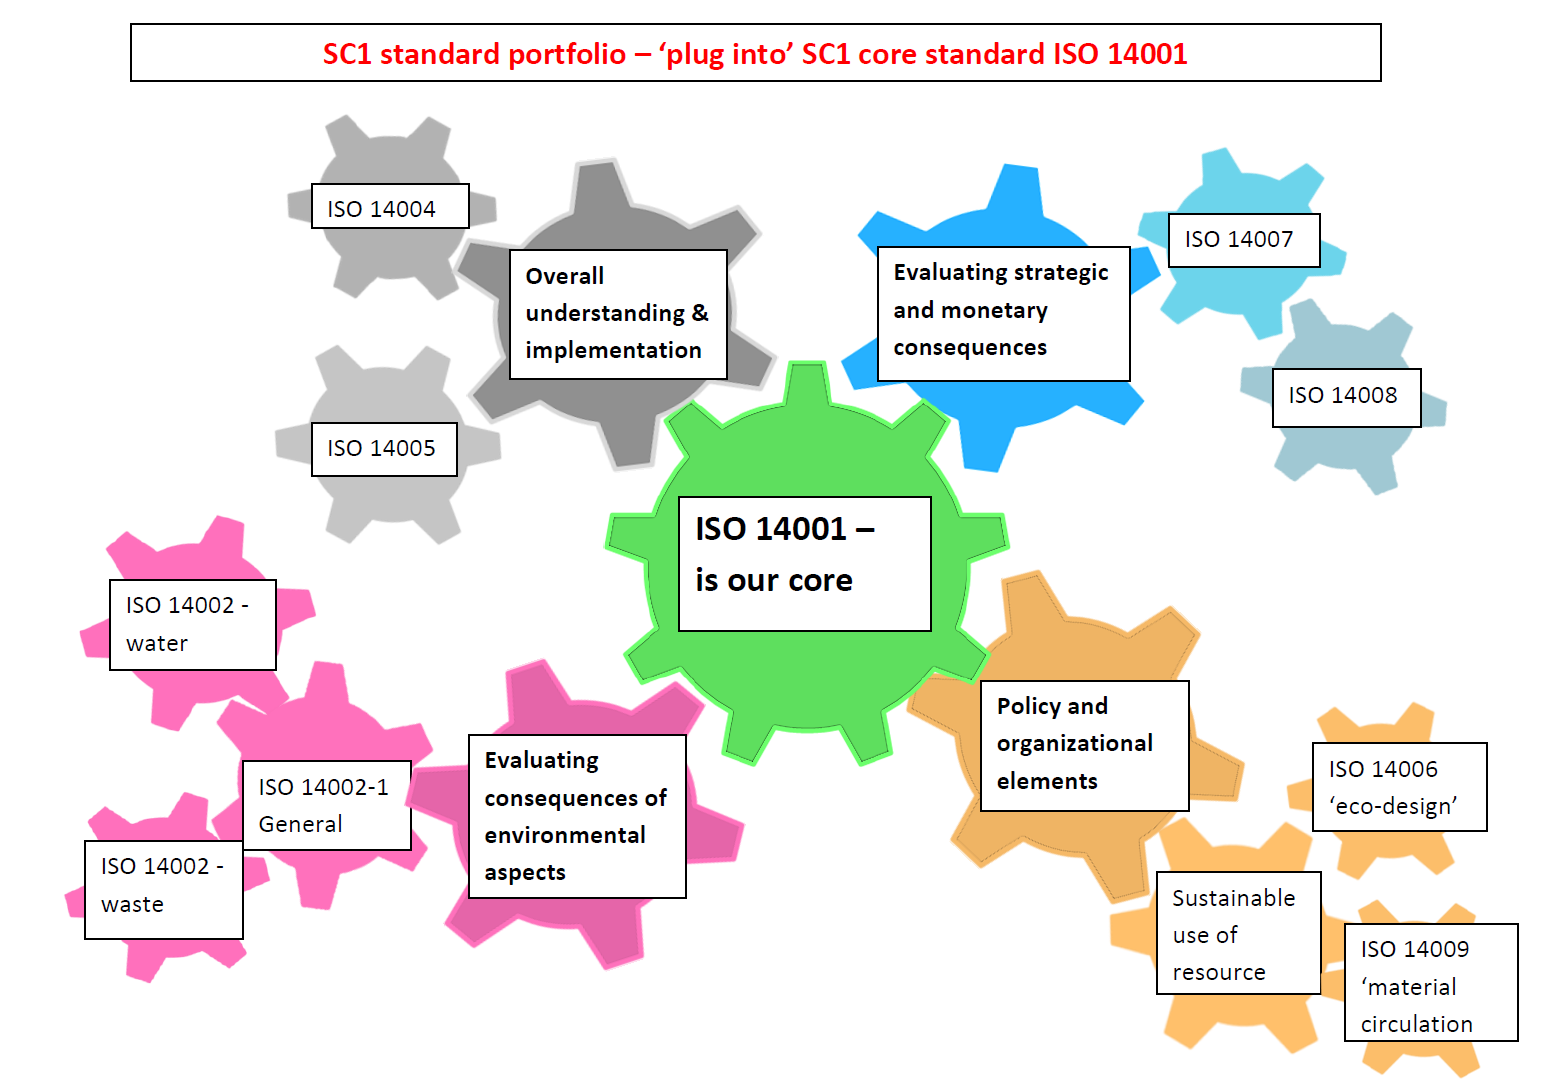 iso 14001 revision 2015 standard pdf